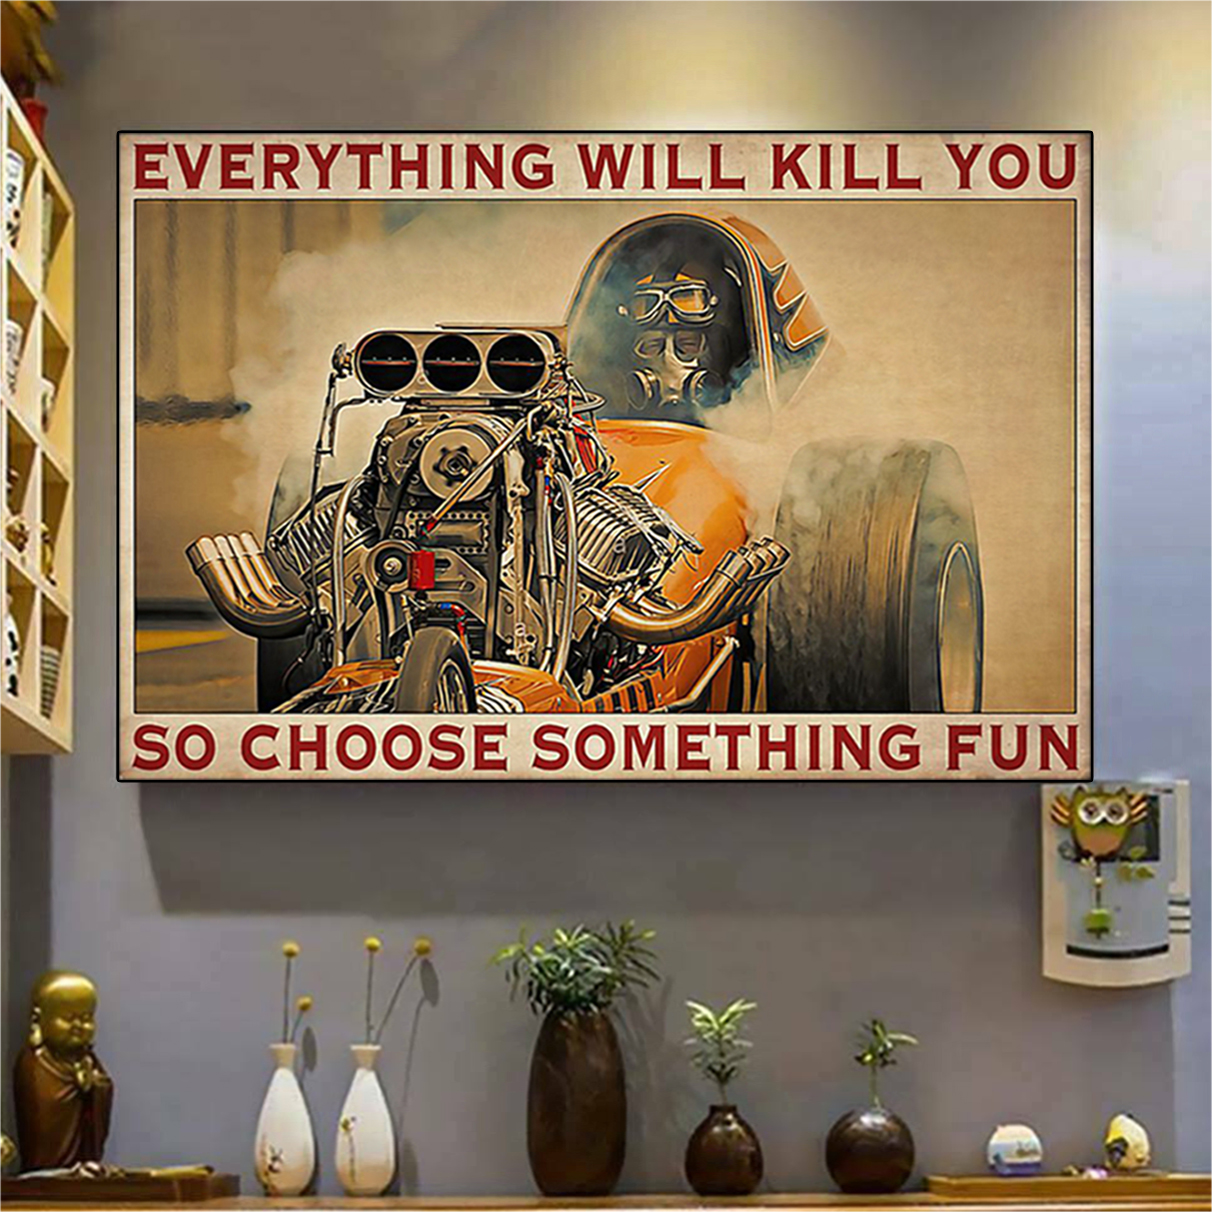 Drag racer everything will kill you so choose something fun poster A2